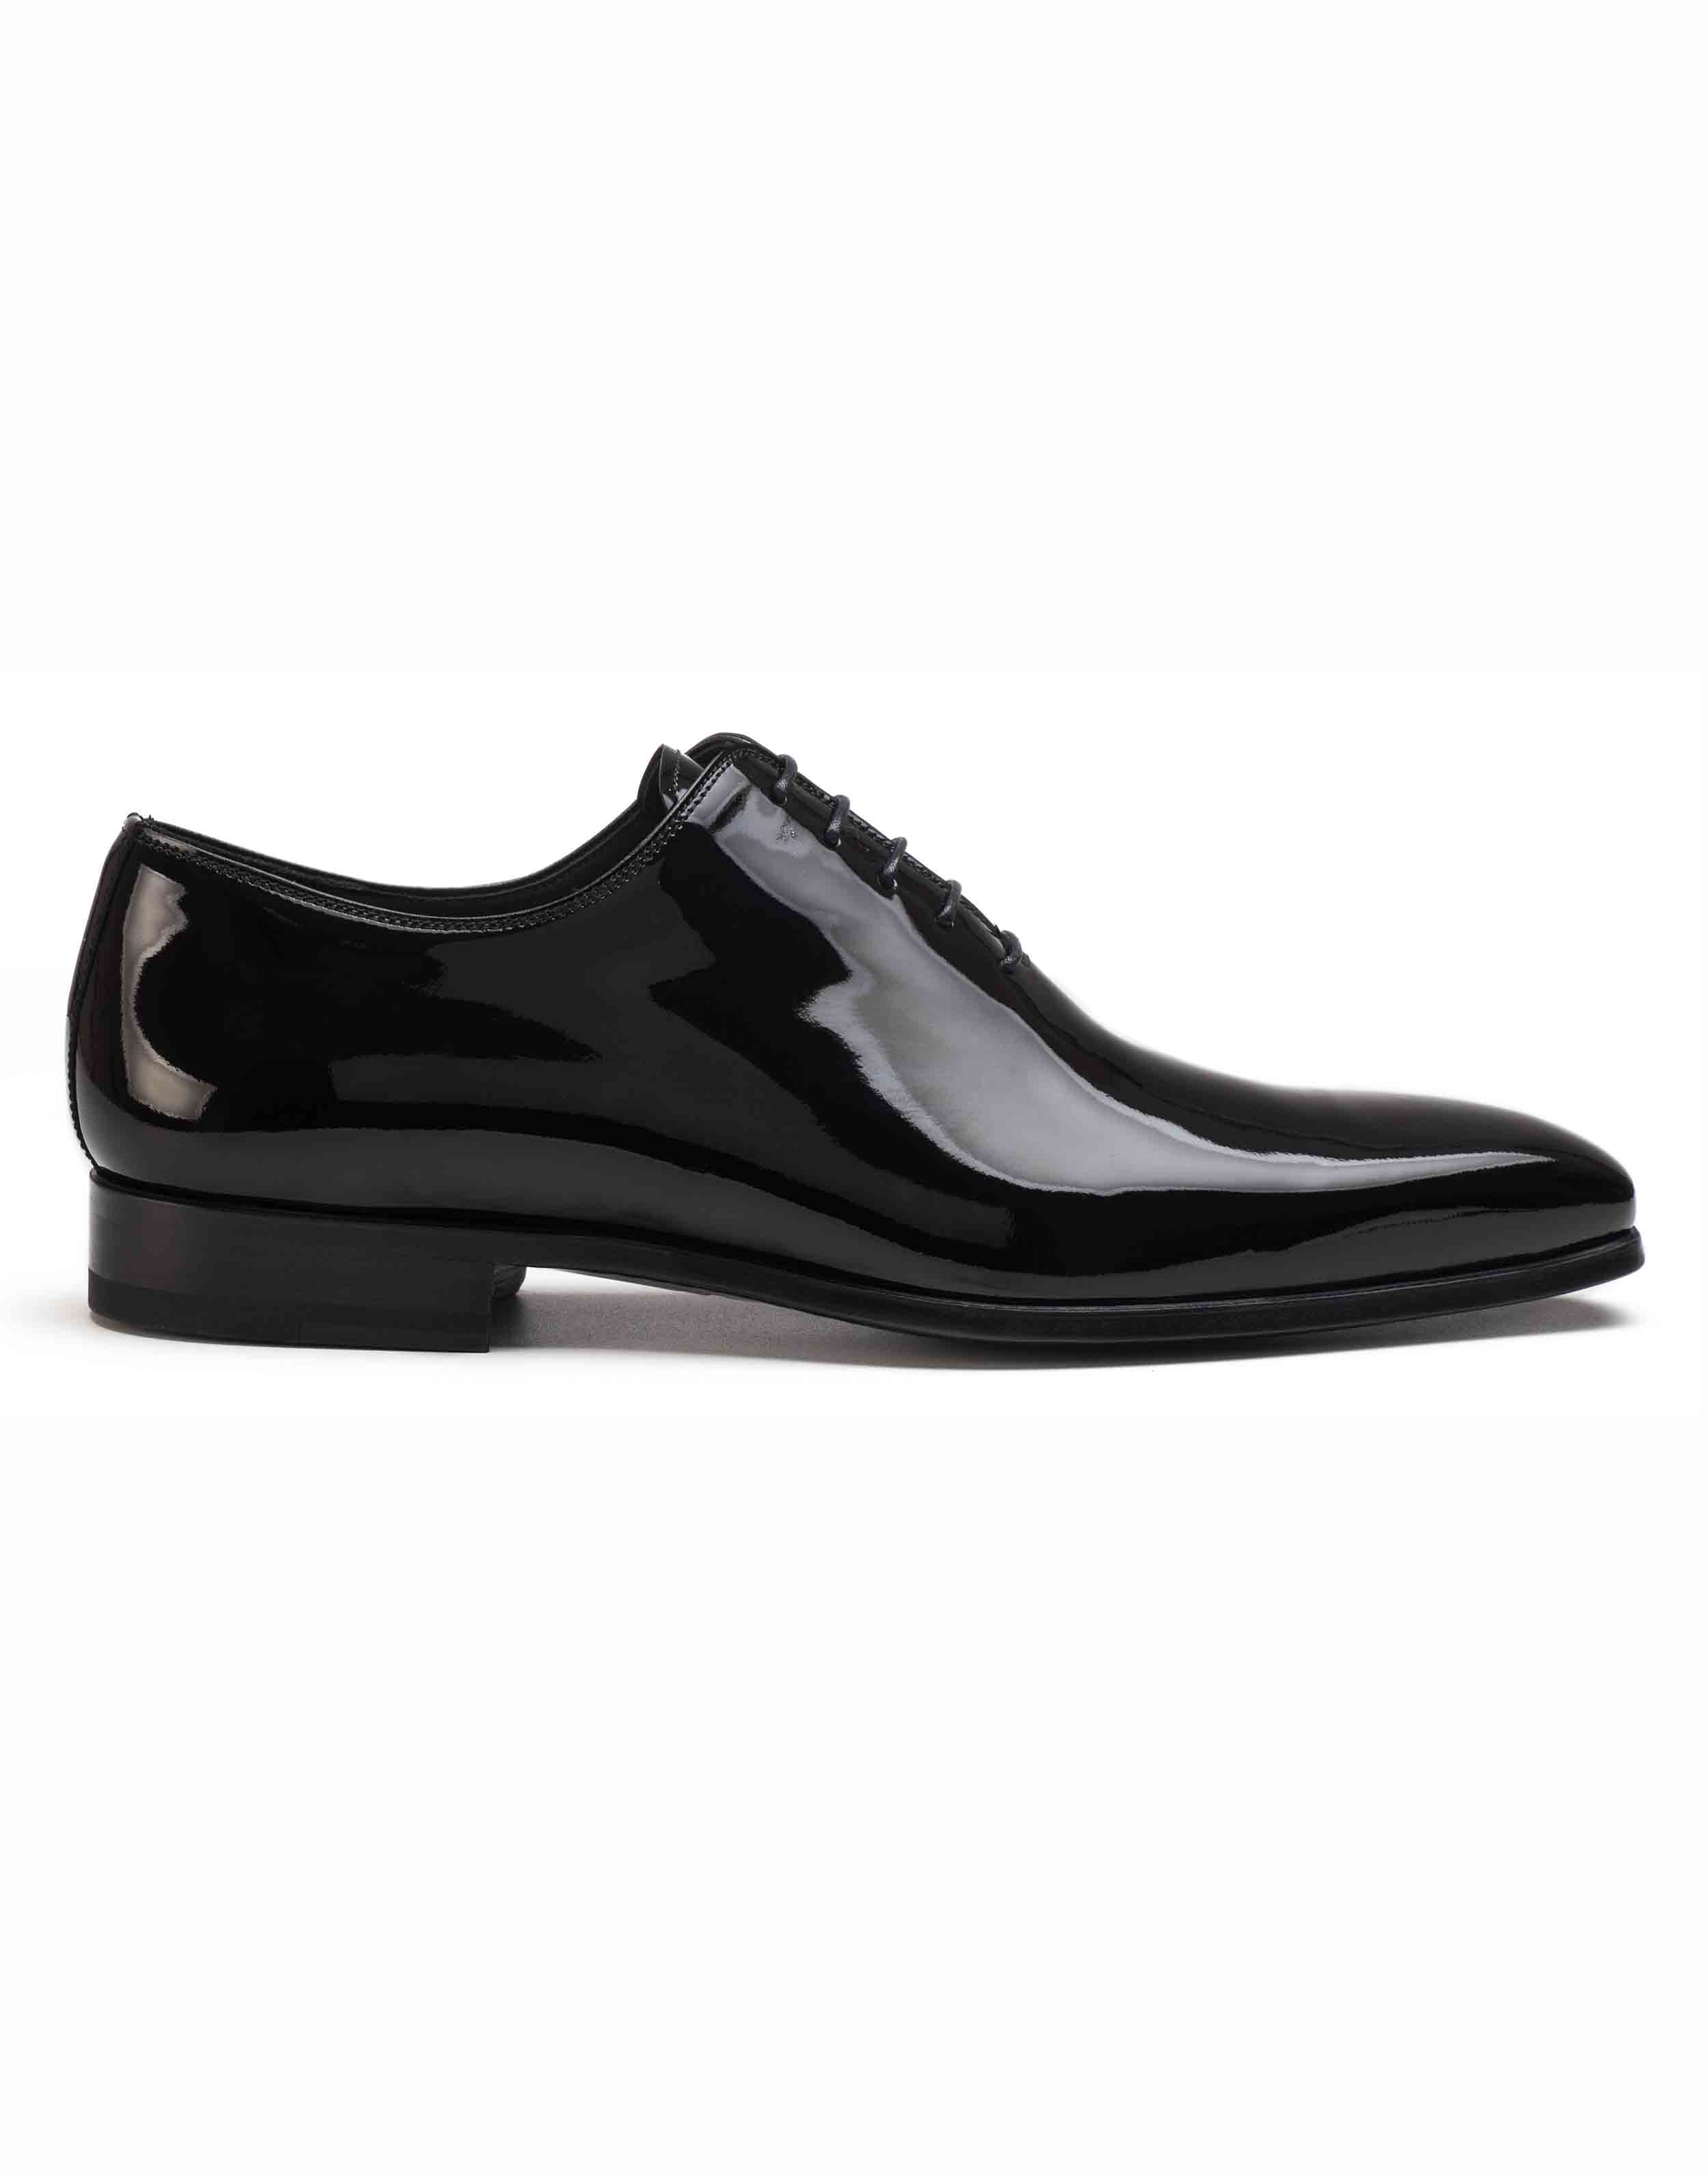 PATENT LEATHER OXFORD SHOE1